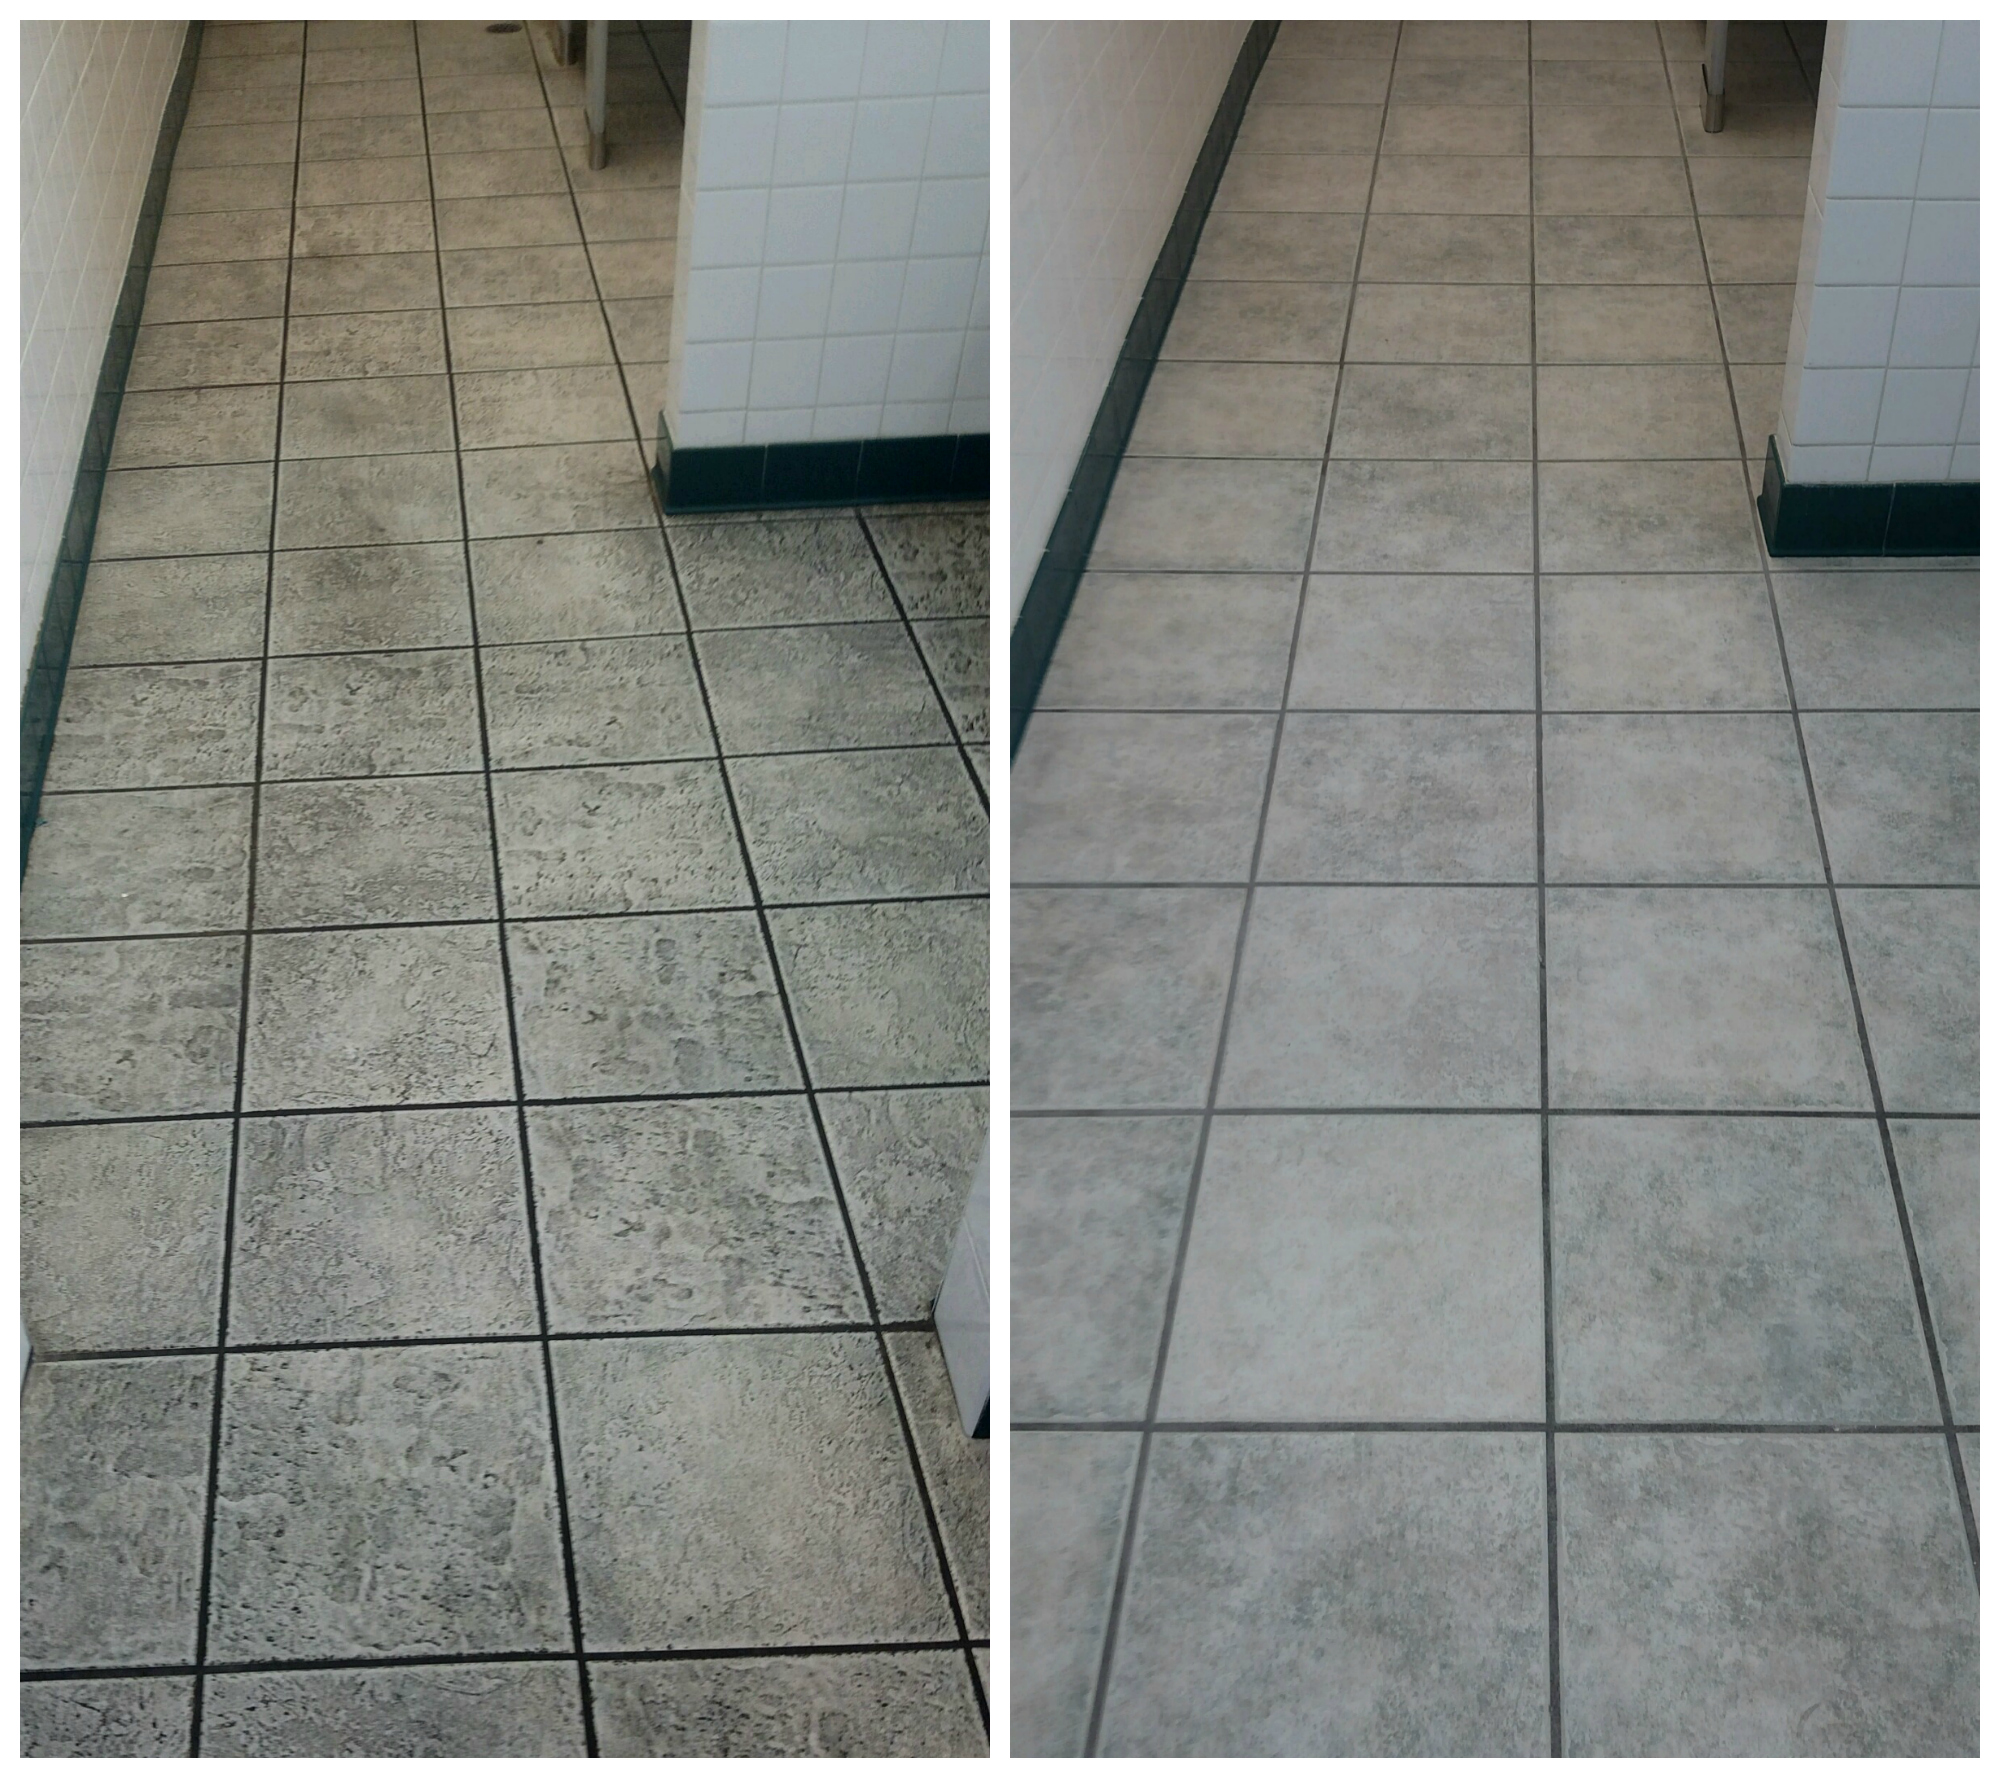 Commercial Tile Cleaning | HiCaliber